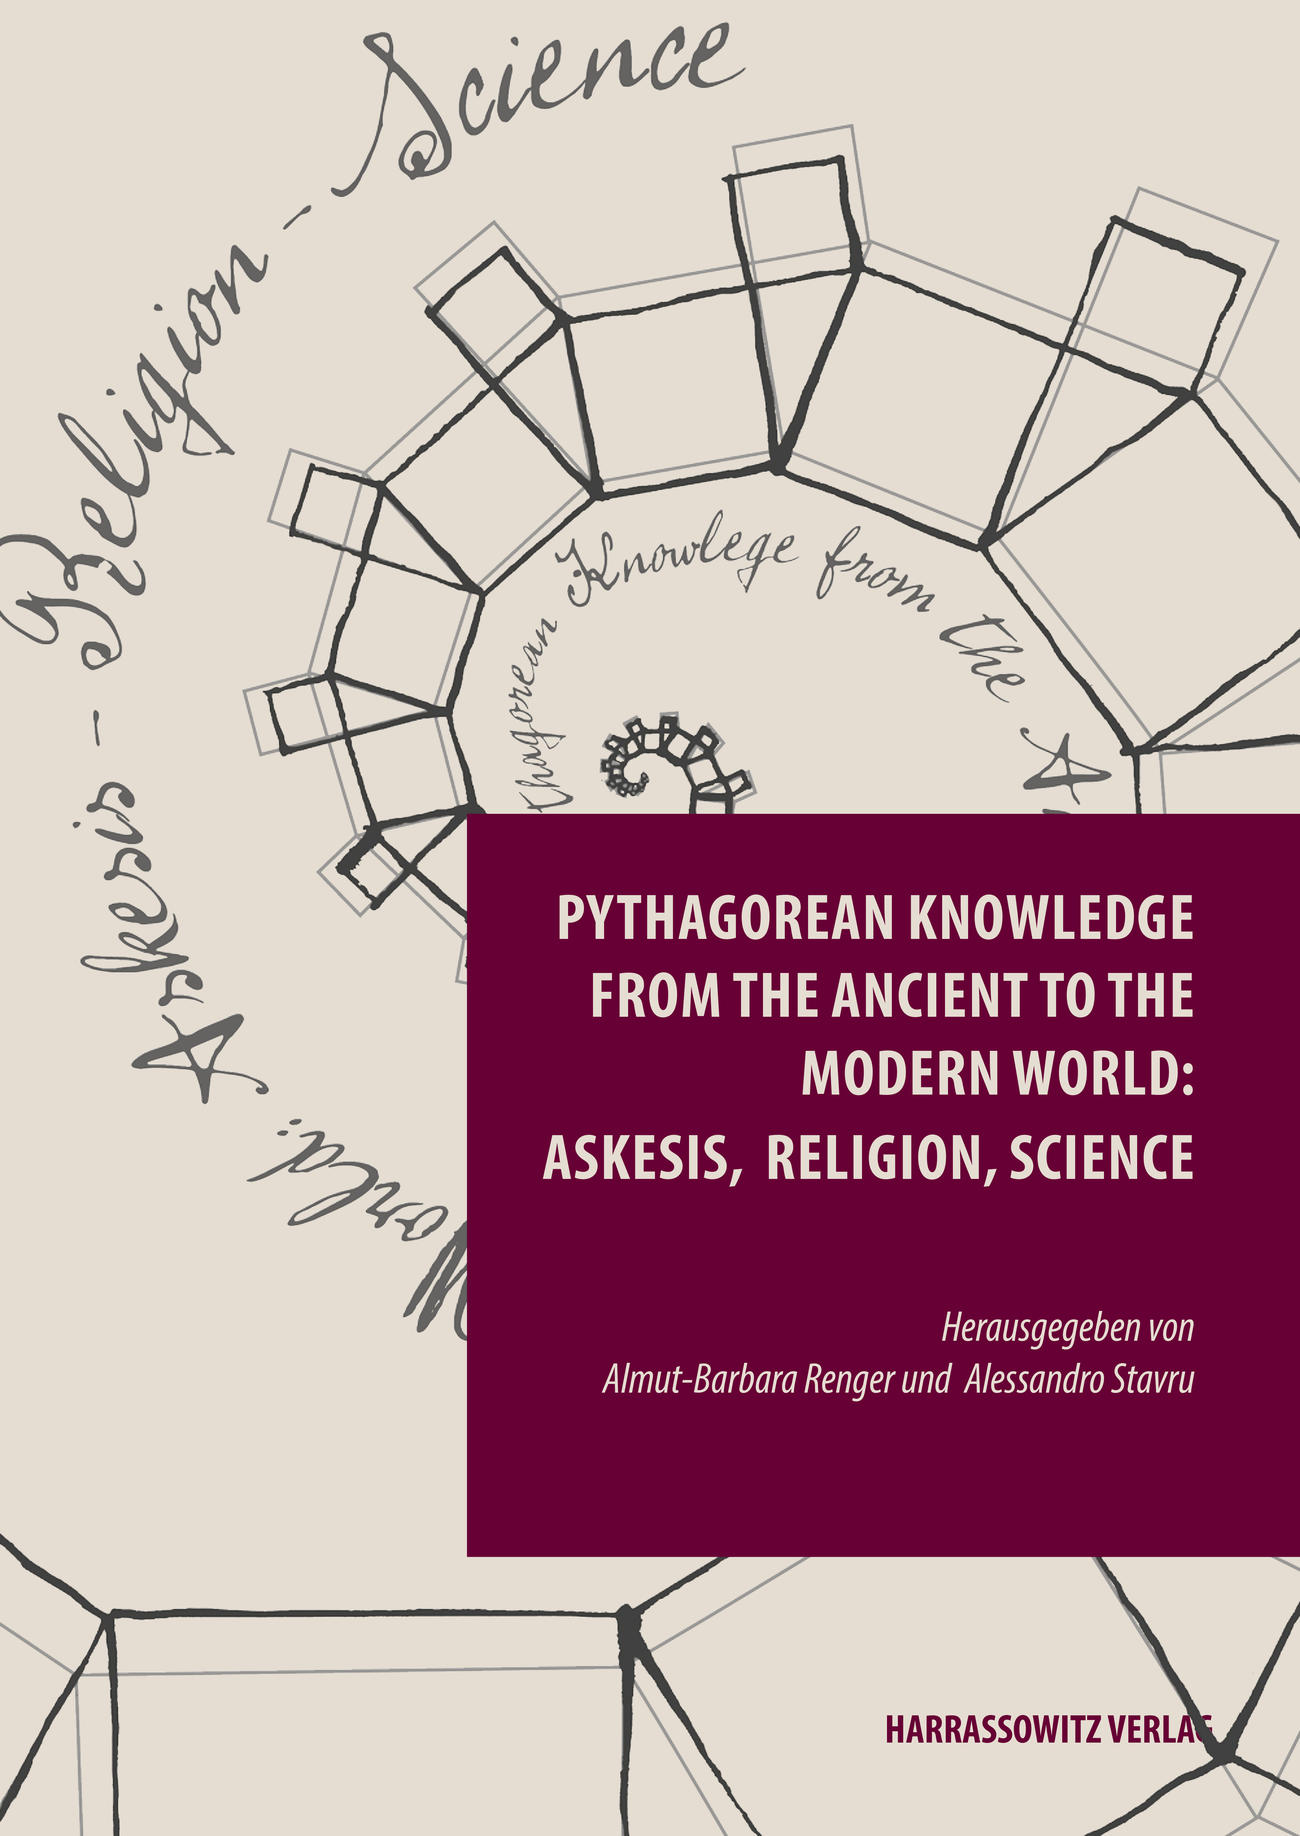 Book cover: Almut-Barbara Renger and Alessandro Stavru (Eds.), Pythagorean Knowledge from the Ancient to the Modern World. Askesis, Religion Science,